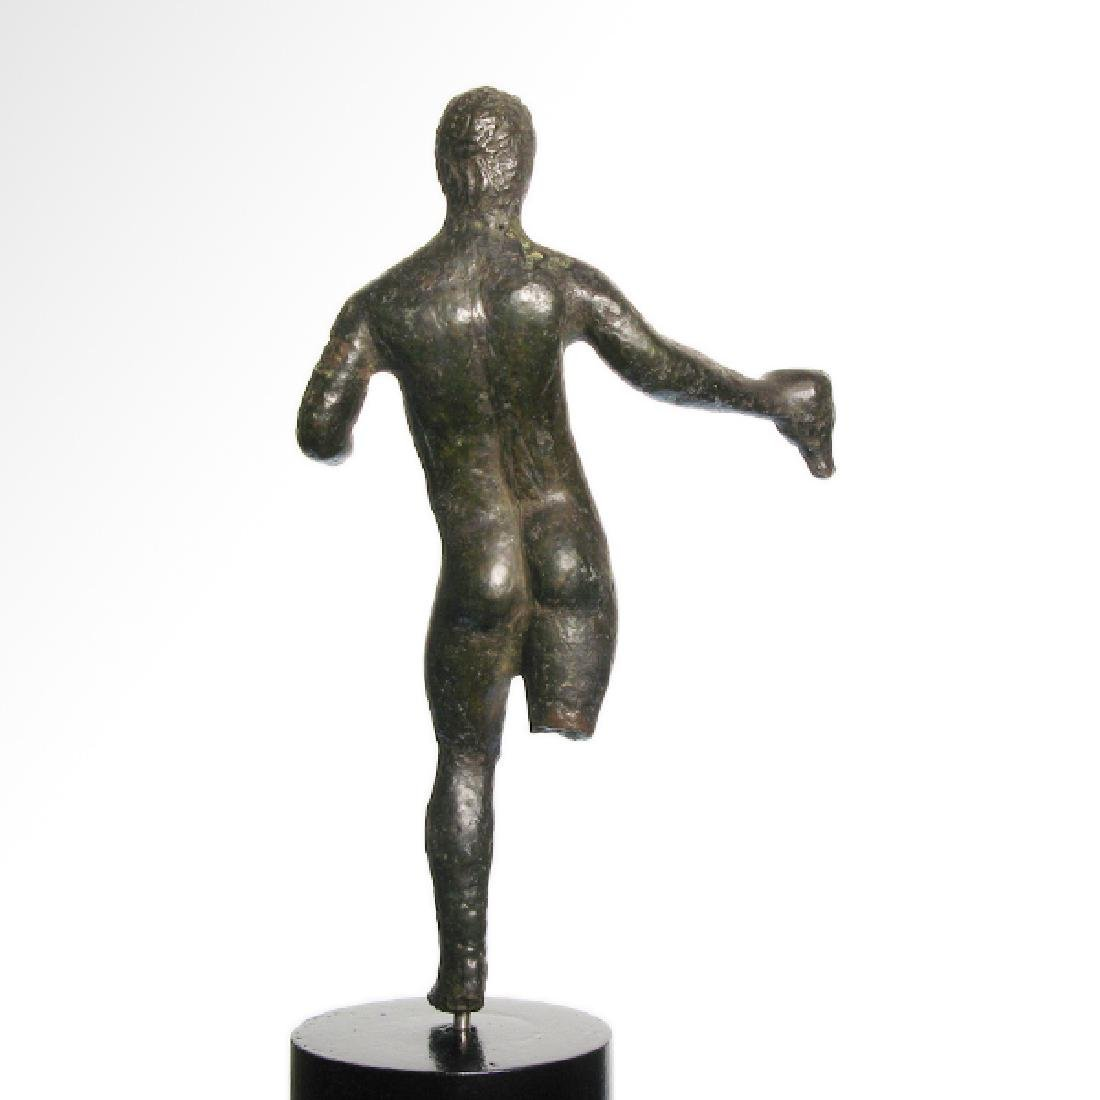 Etruscan Bronze Figure of an Athlete, c. 3rd-2nd - 6